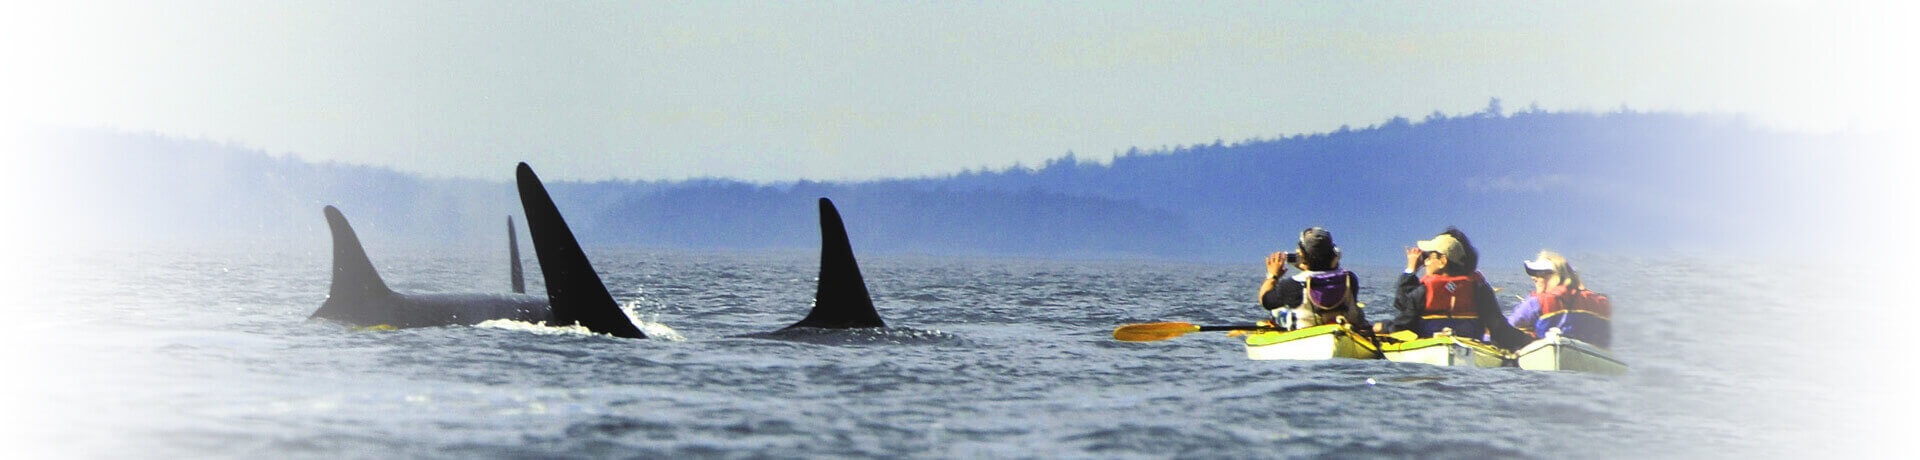 Orca-Whales-Kayaking-Washington-1920x460-4